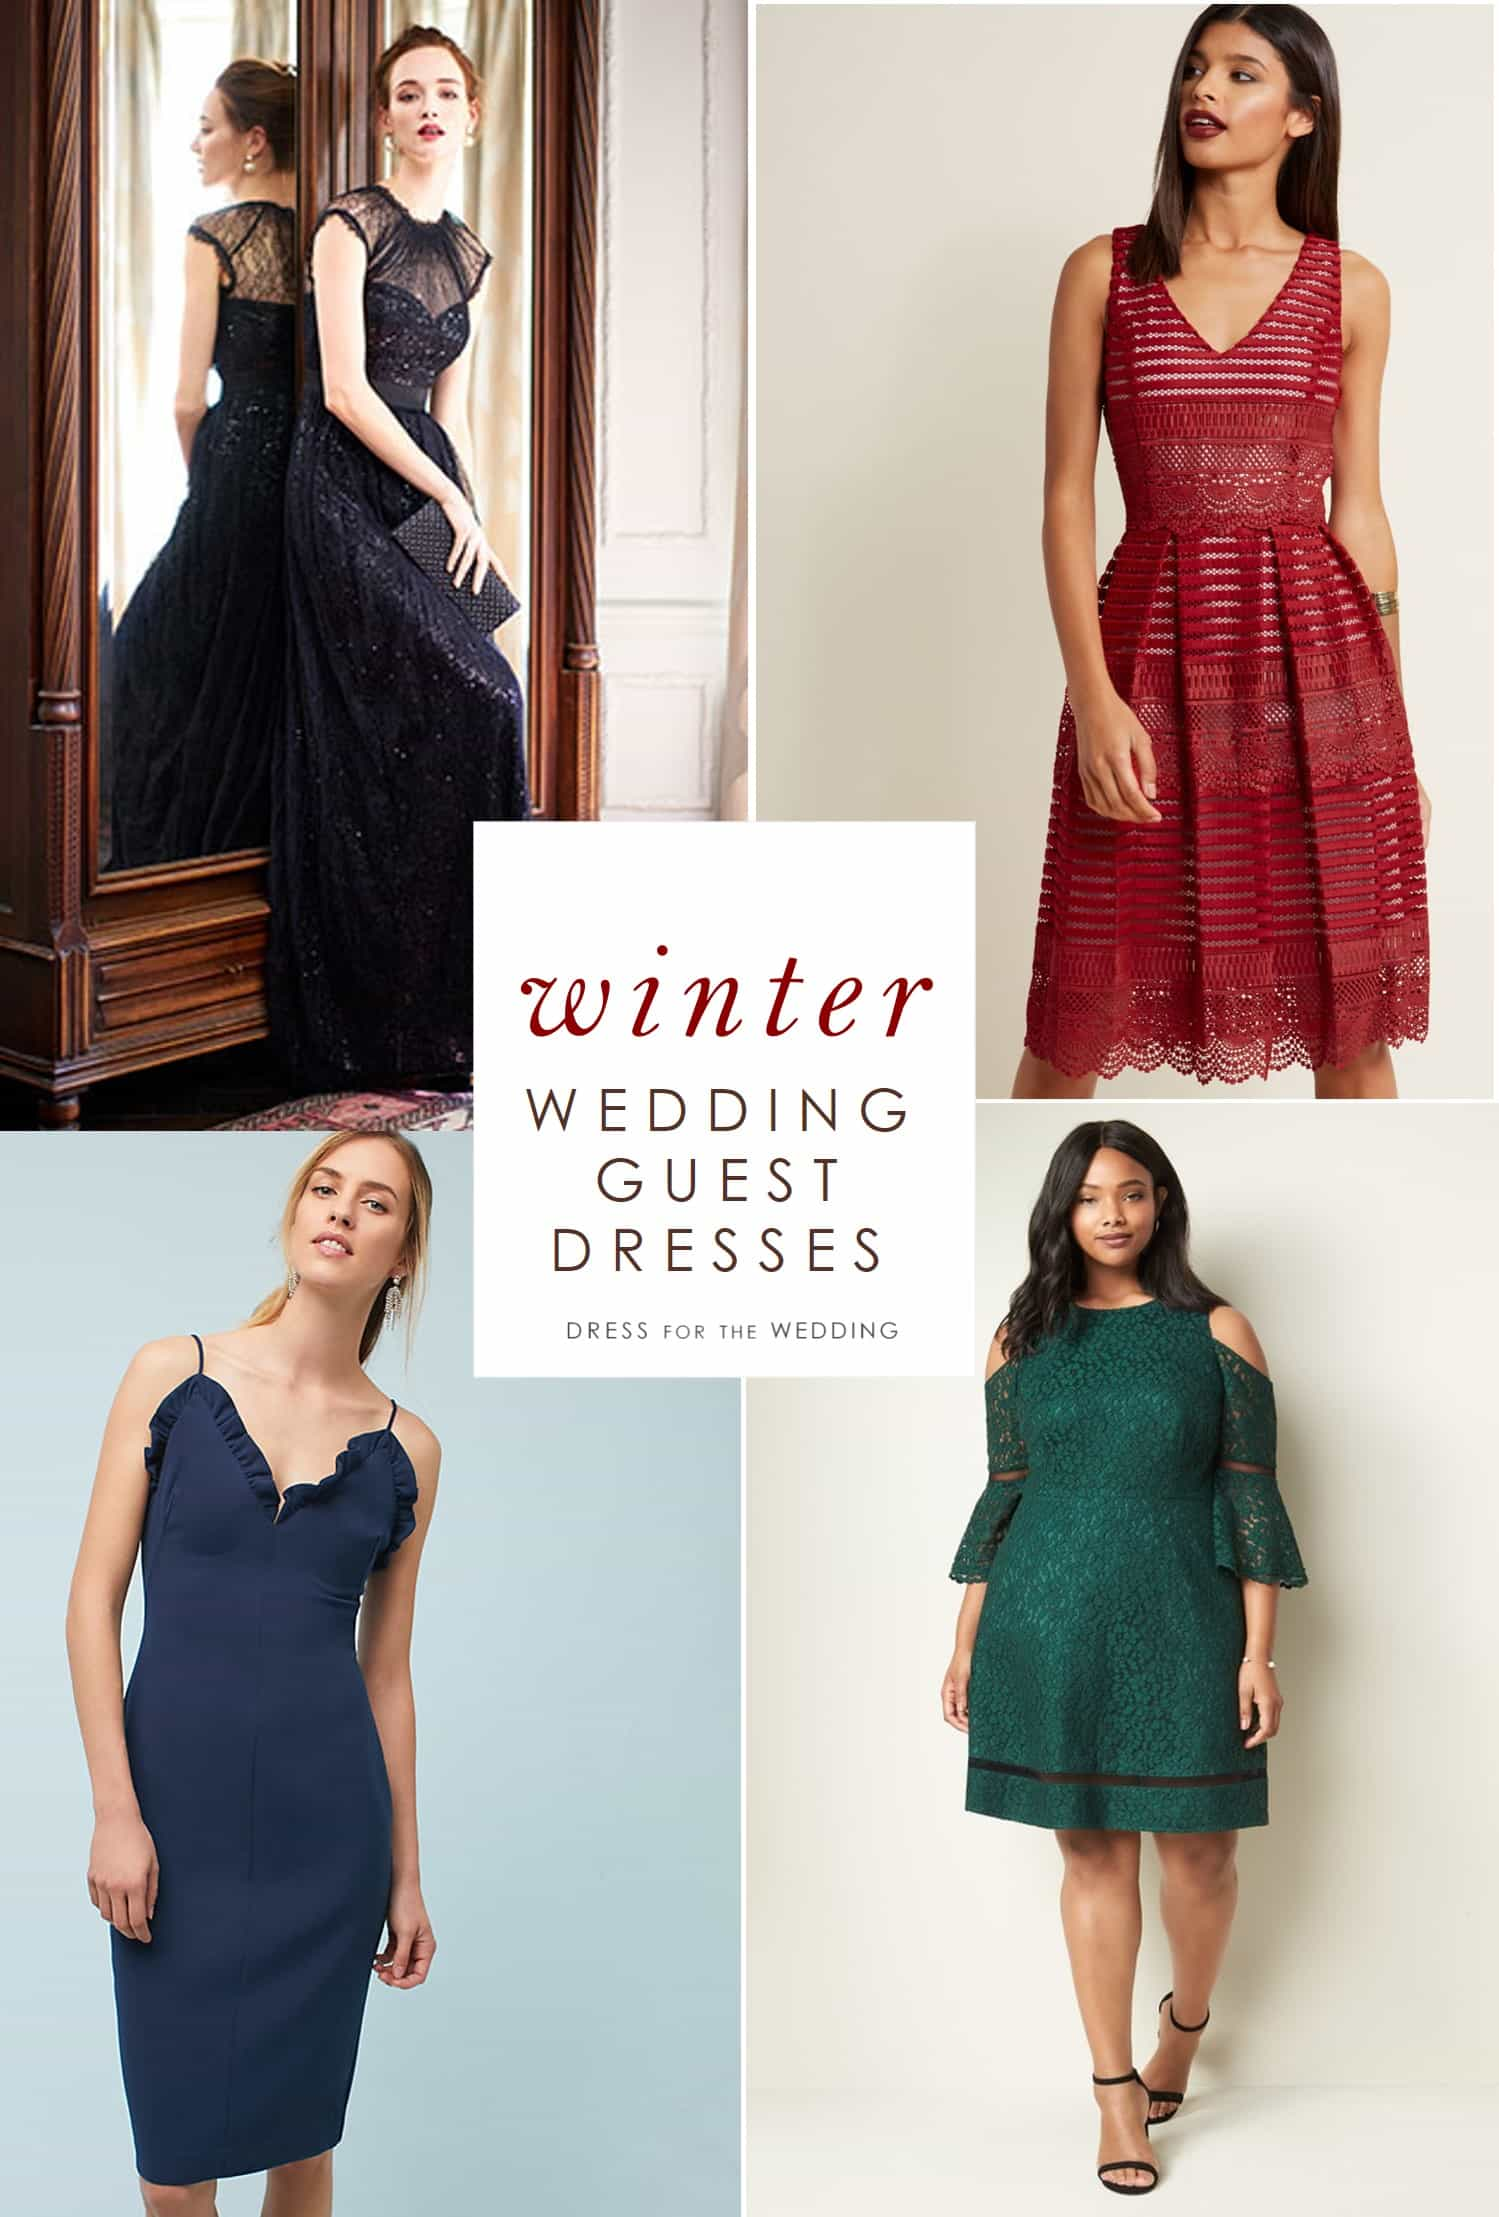 Dressy Casual Archives at Dress for the Wedding